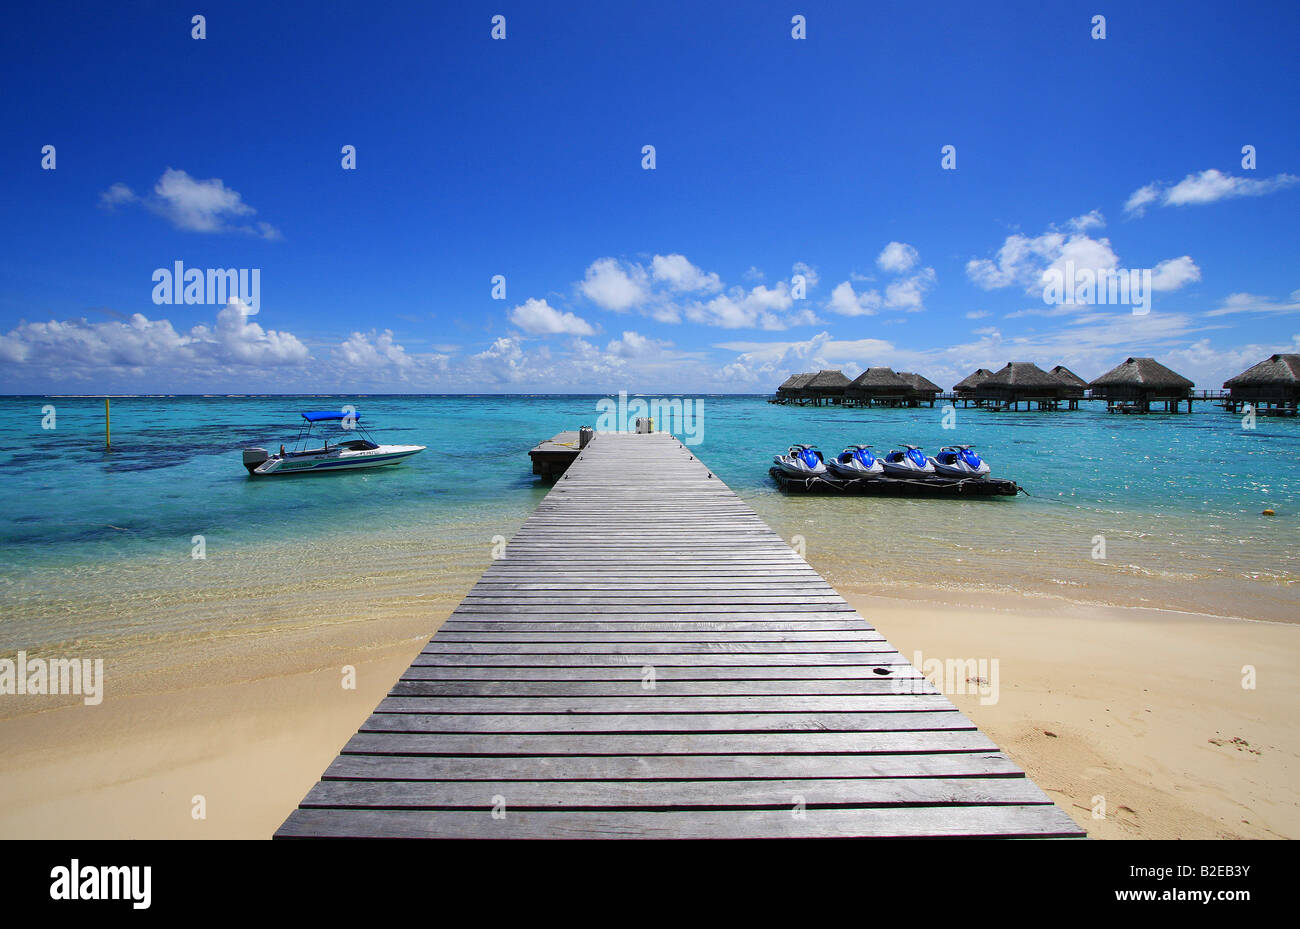 Shacks in shallow water, Tuamotu Archipelago, French Polynesia, Polynesia, Pacific Island - Stock Image